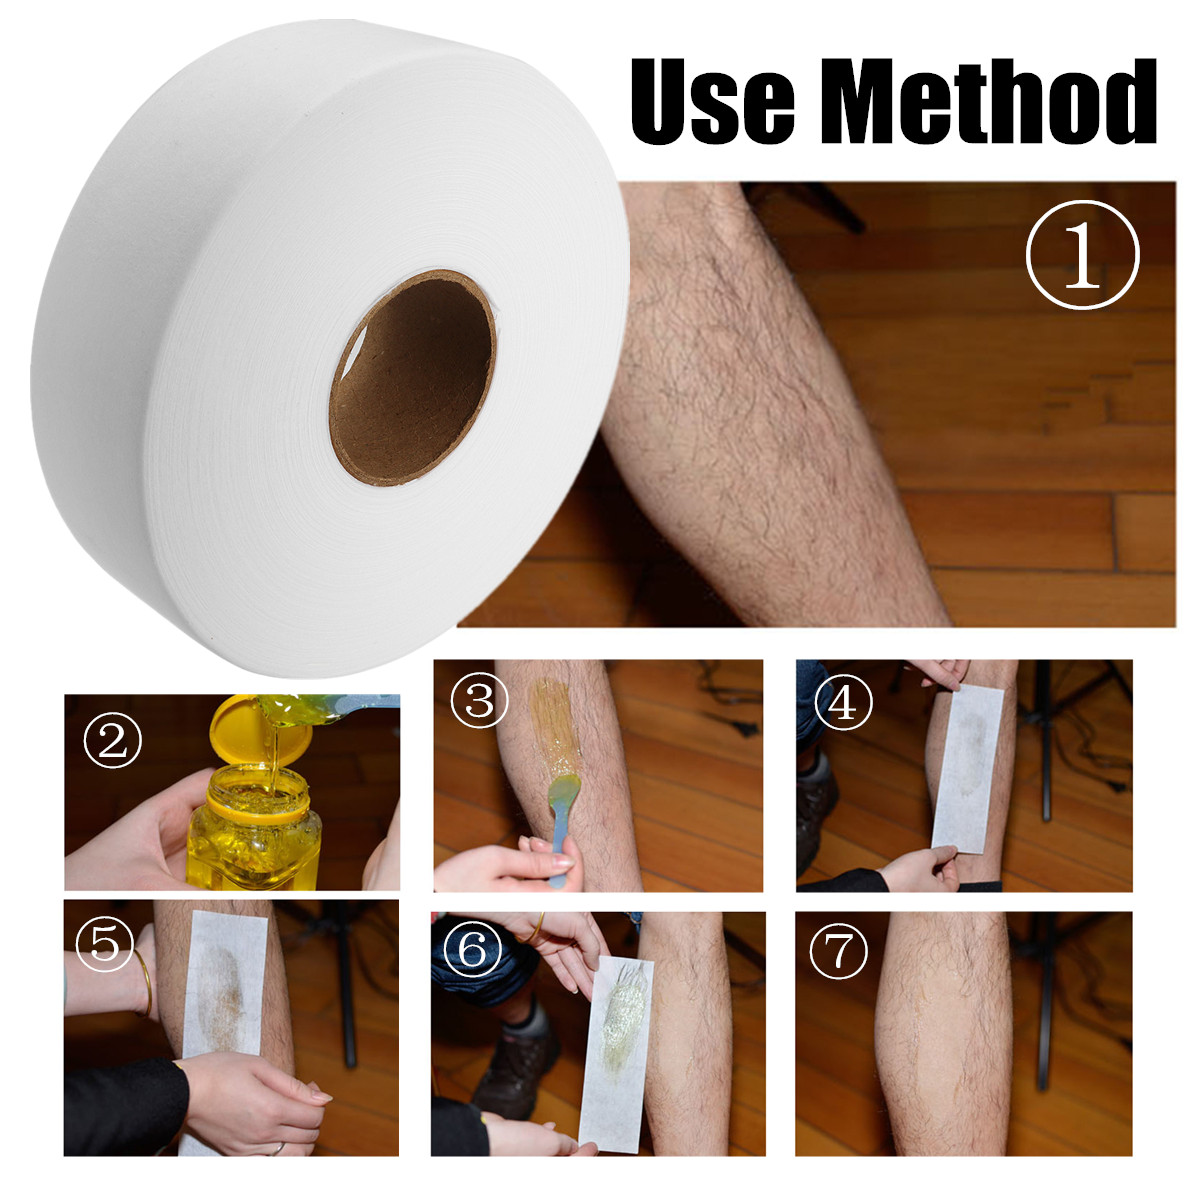 80 Yards 7cm Disposable Non-Woven Depilatory Strip Roll Hair Removal Wax Paper